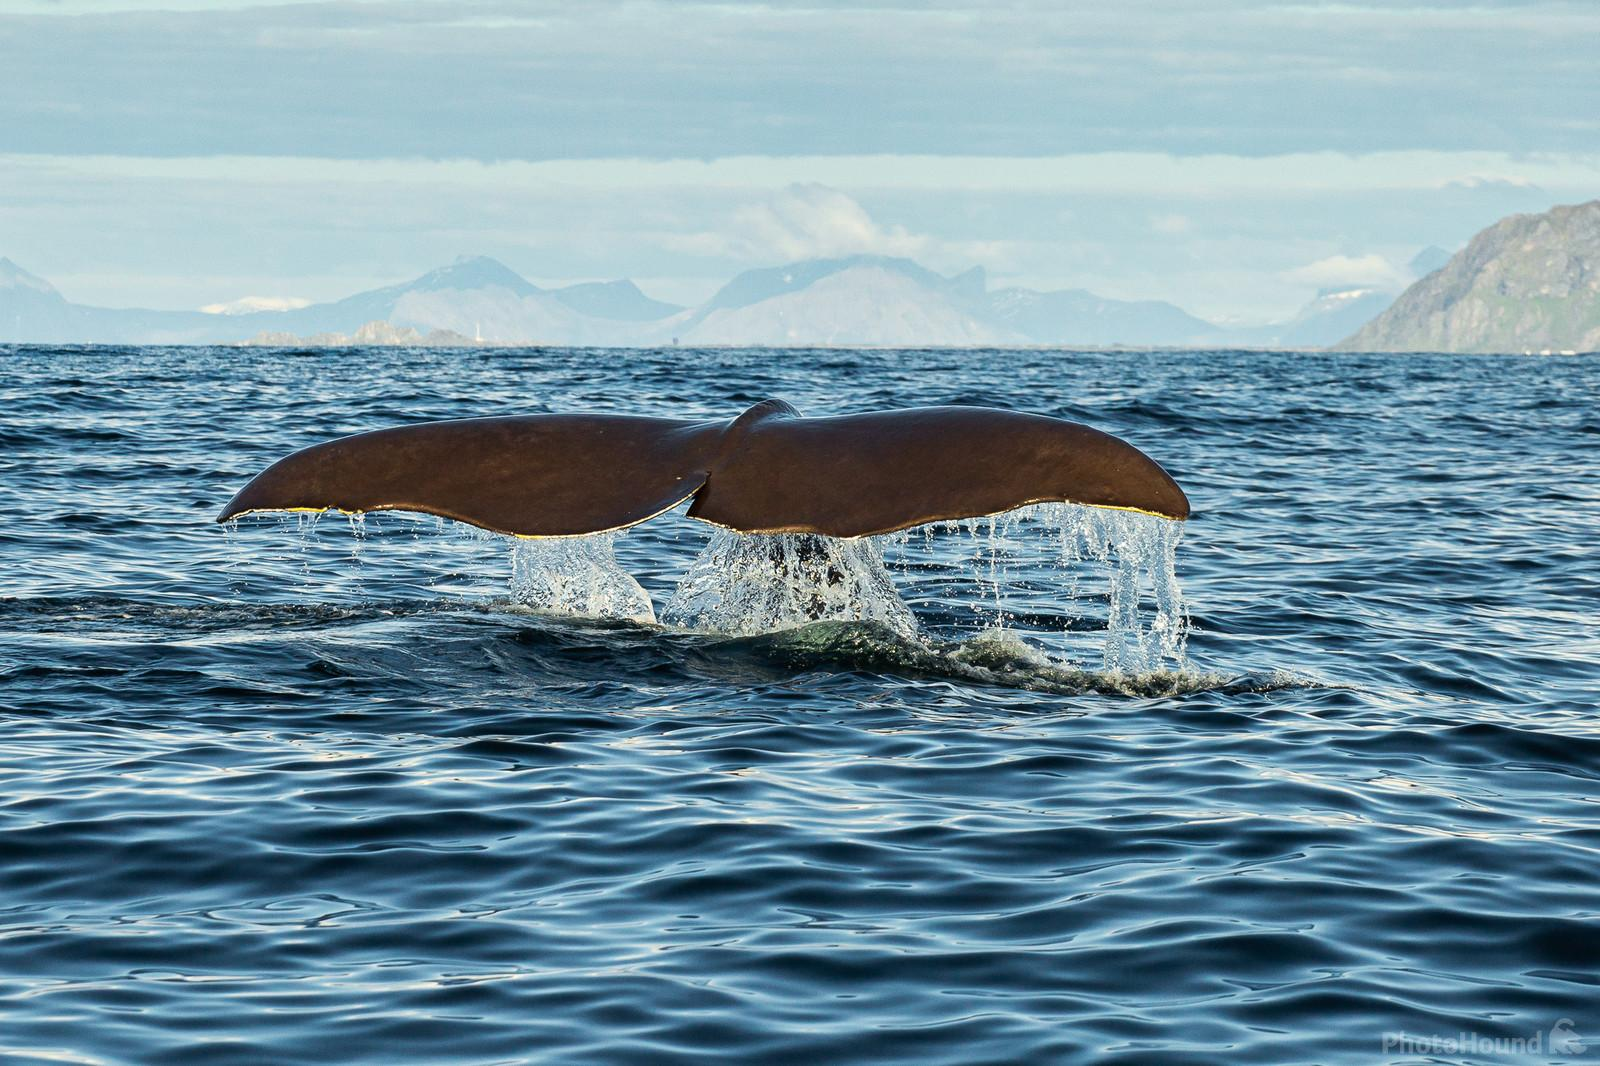 Sperm Whale photography